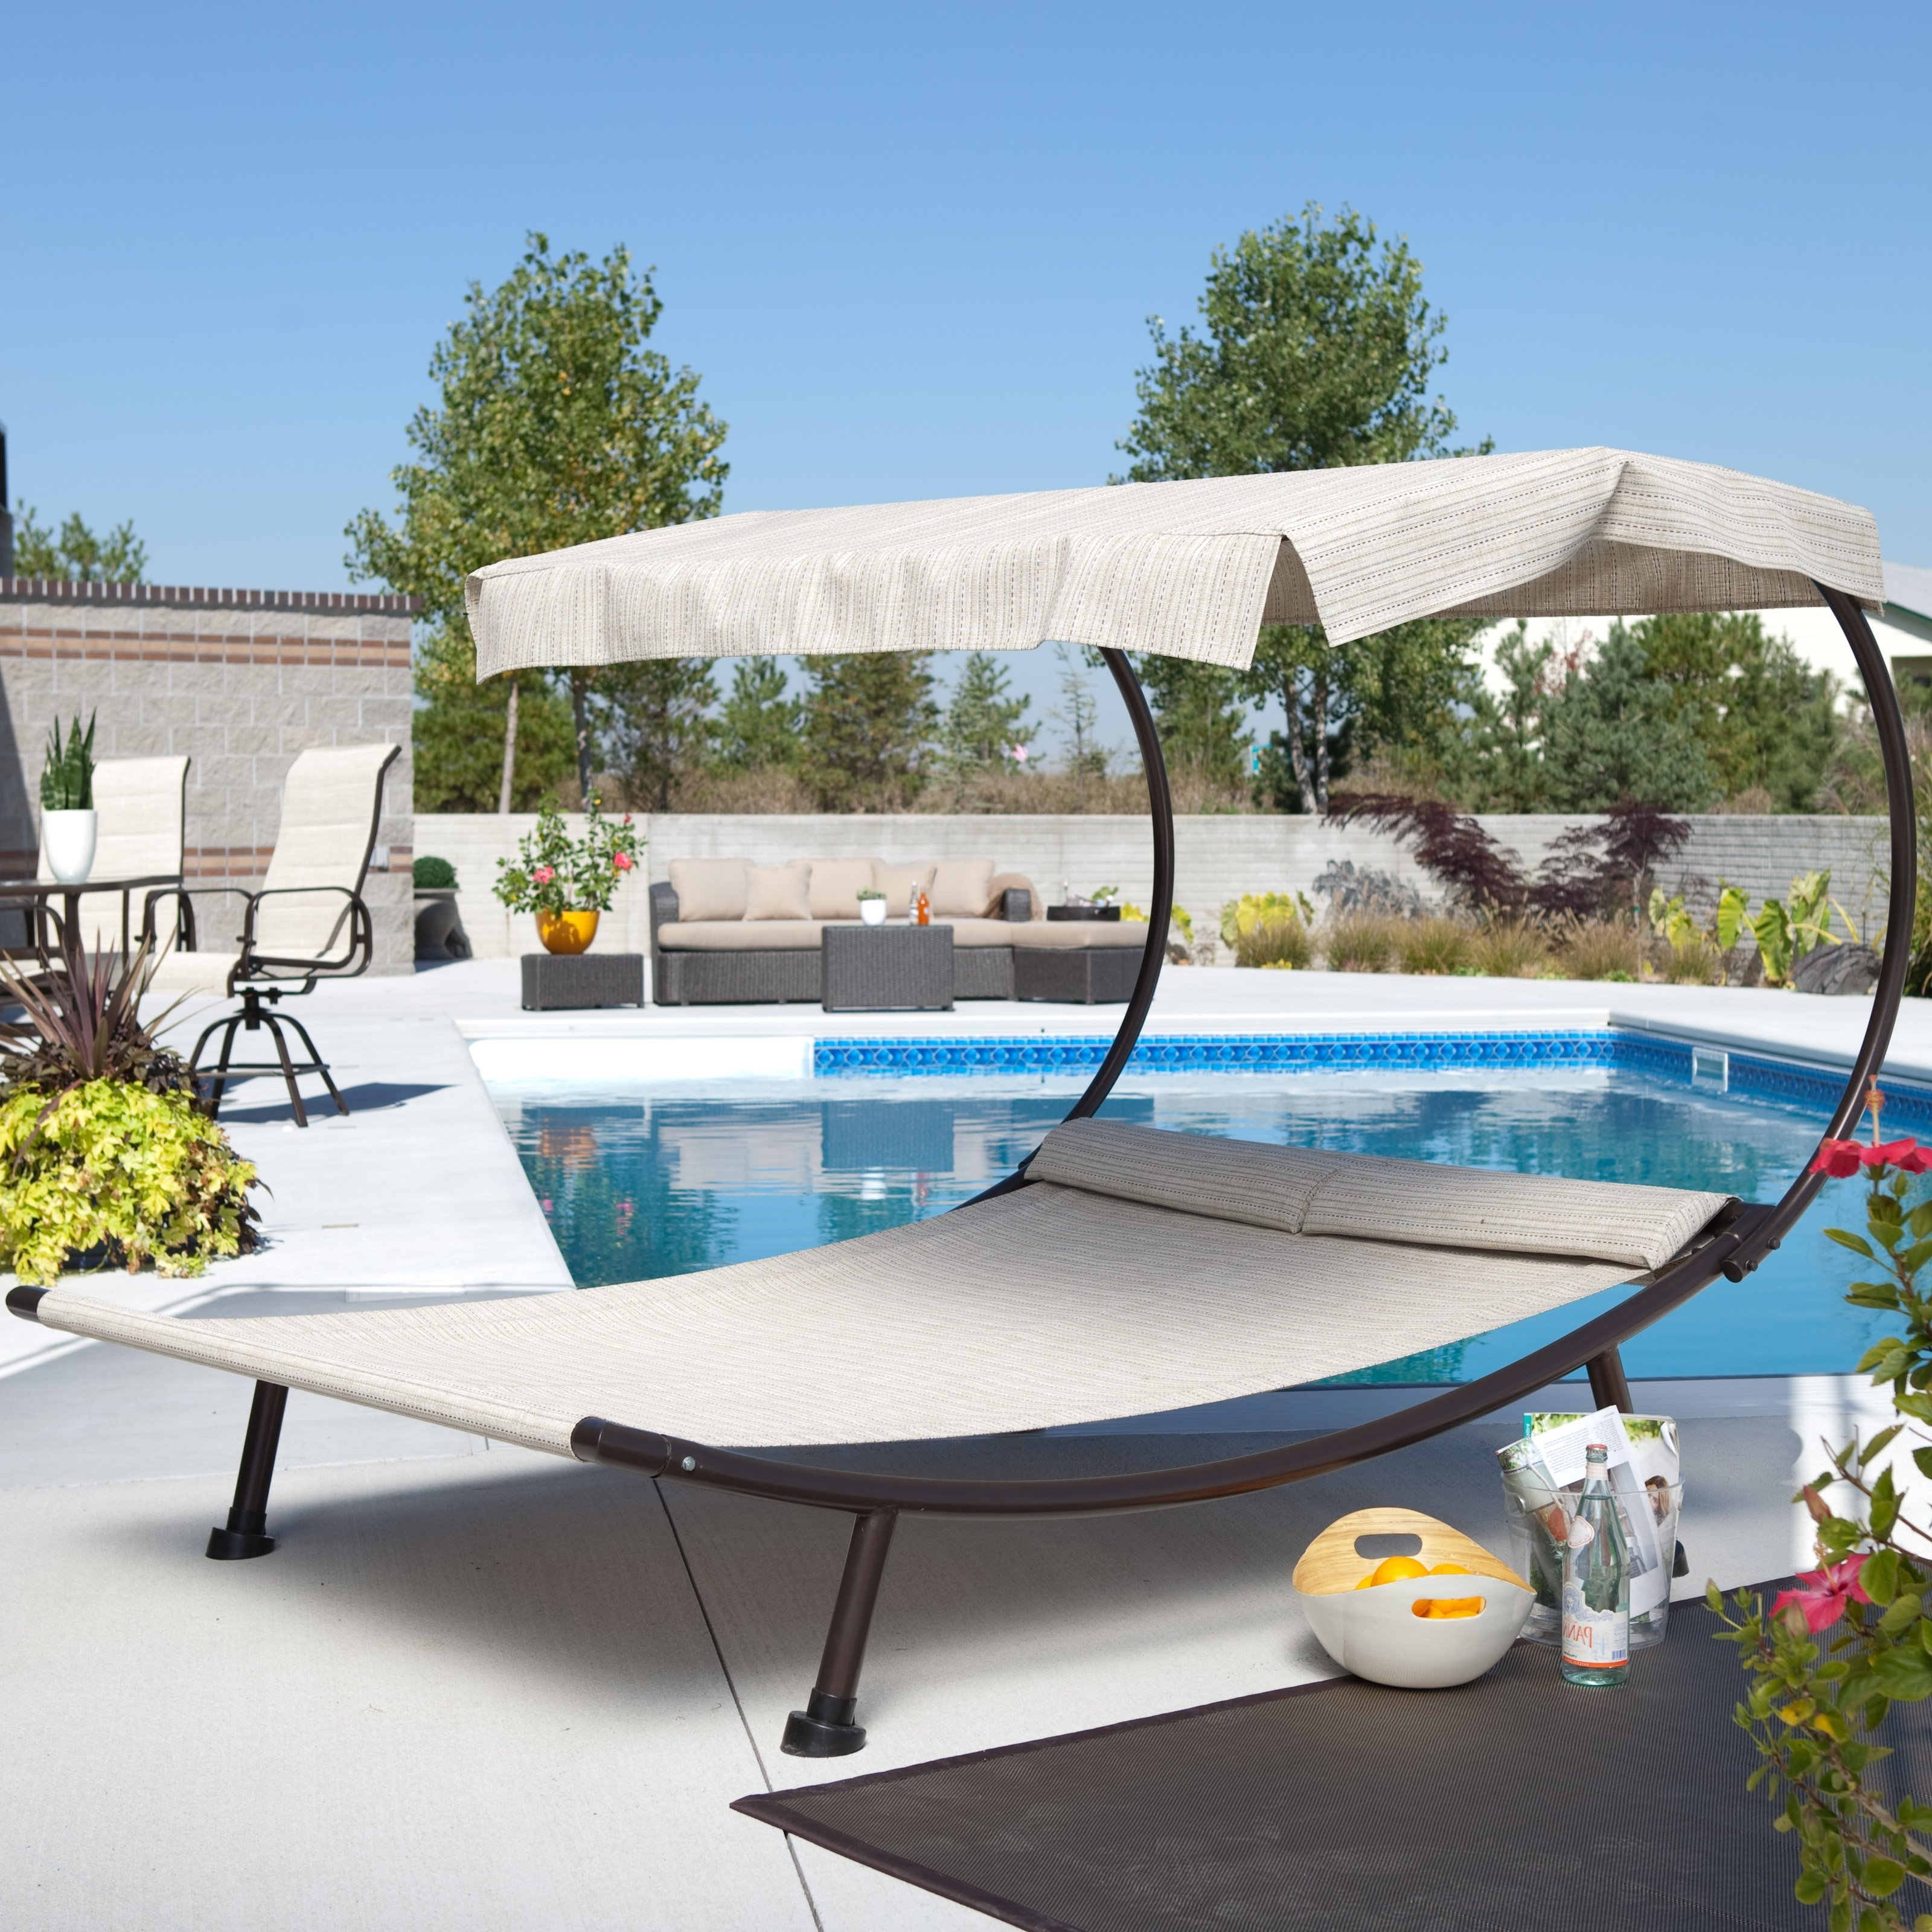 Hayneedle Throughout Latest Patio Double Chaise Lounges (View 7 of 15)